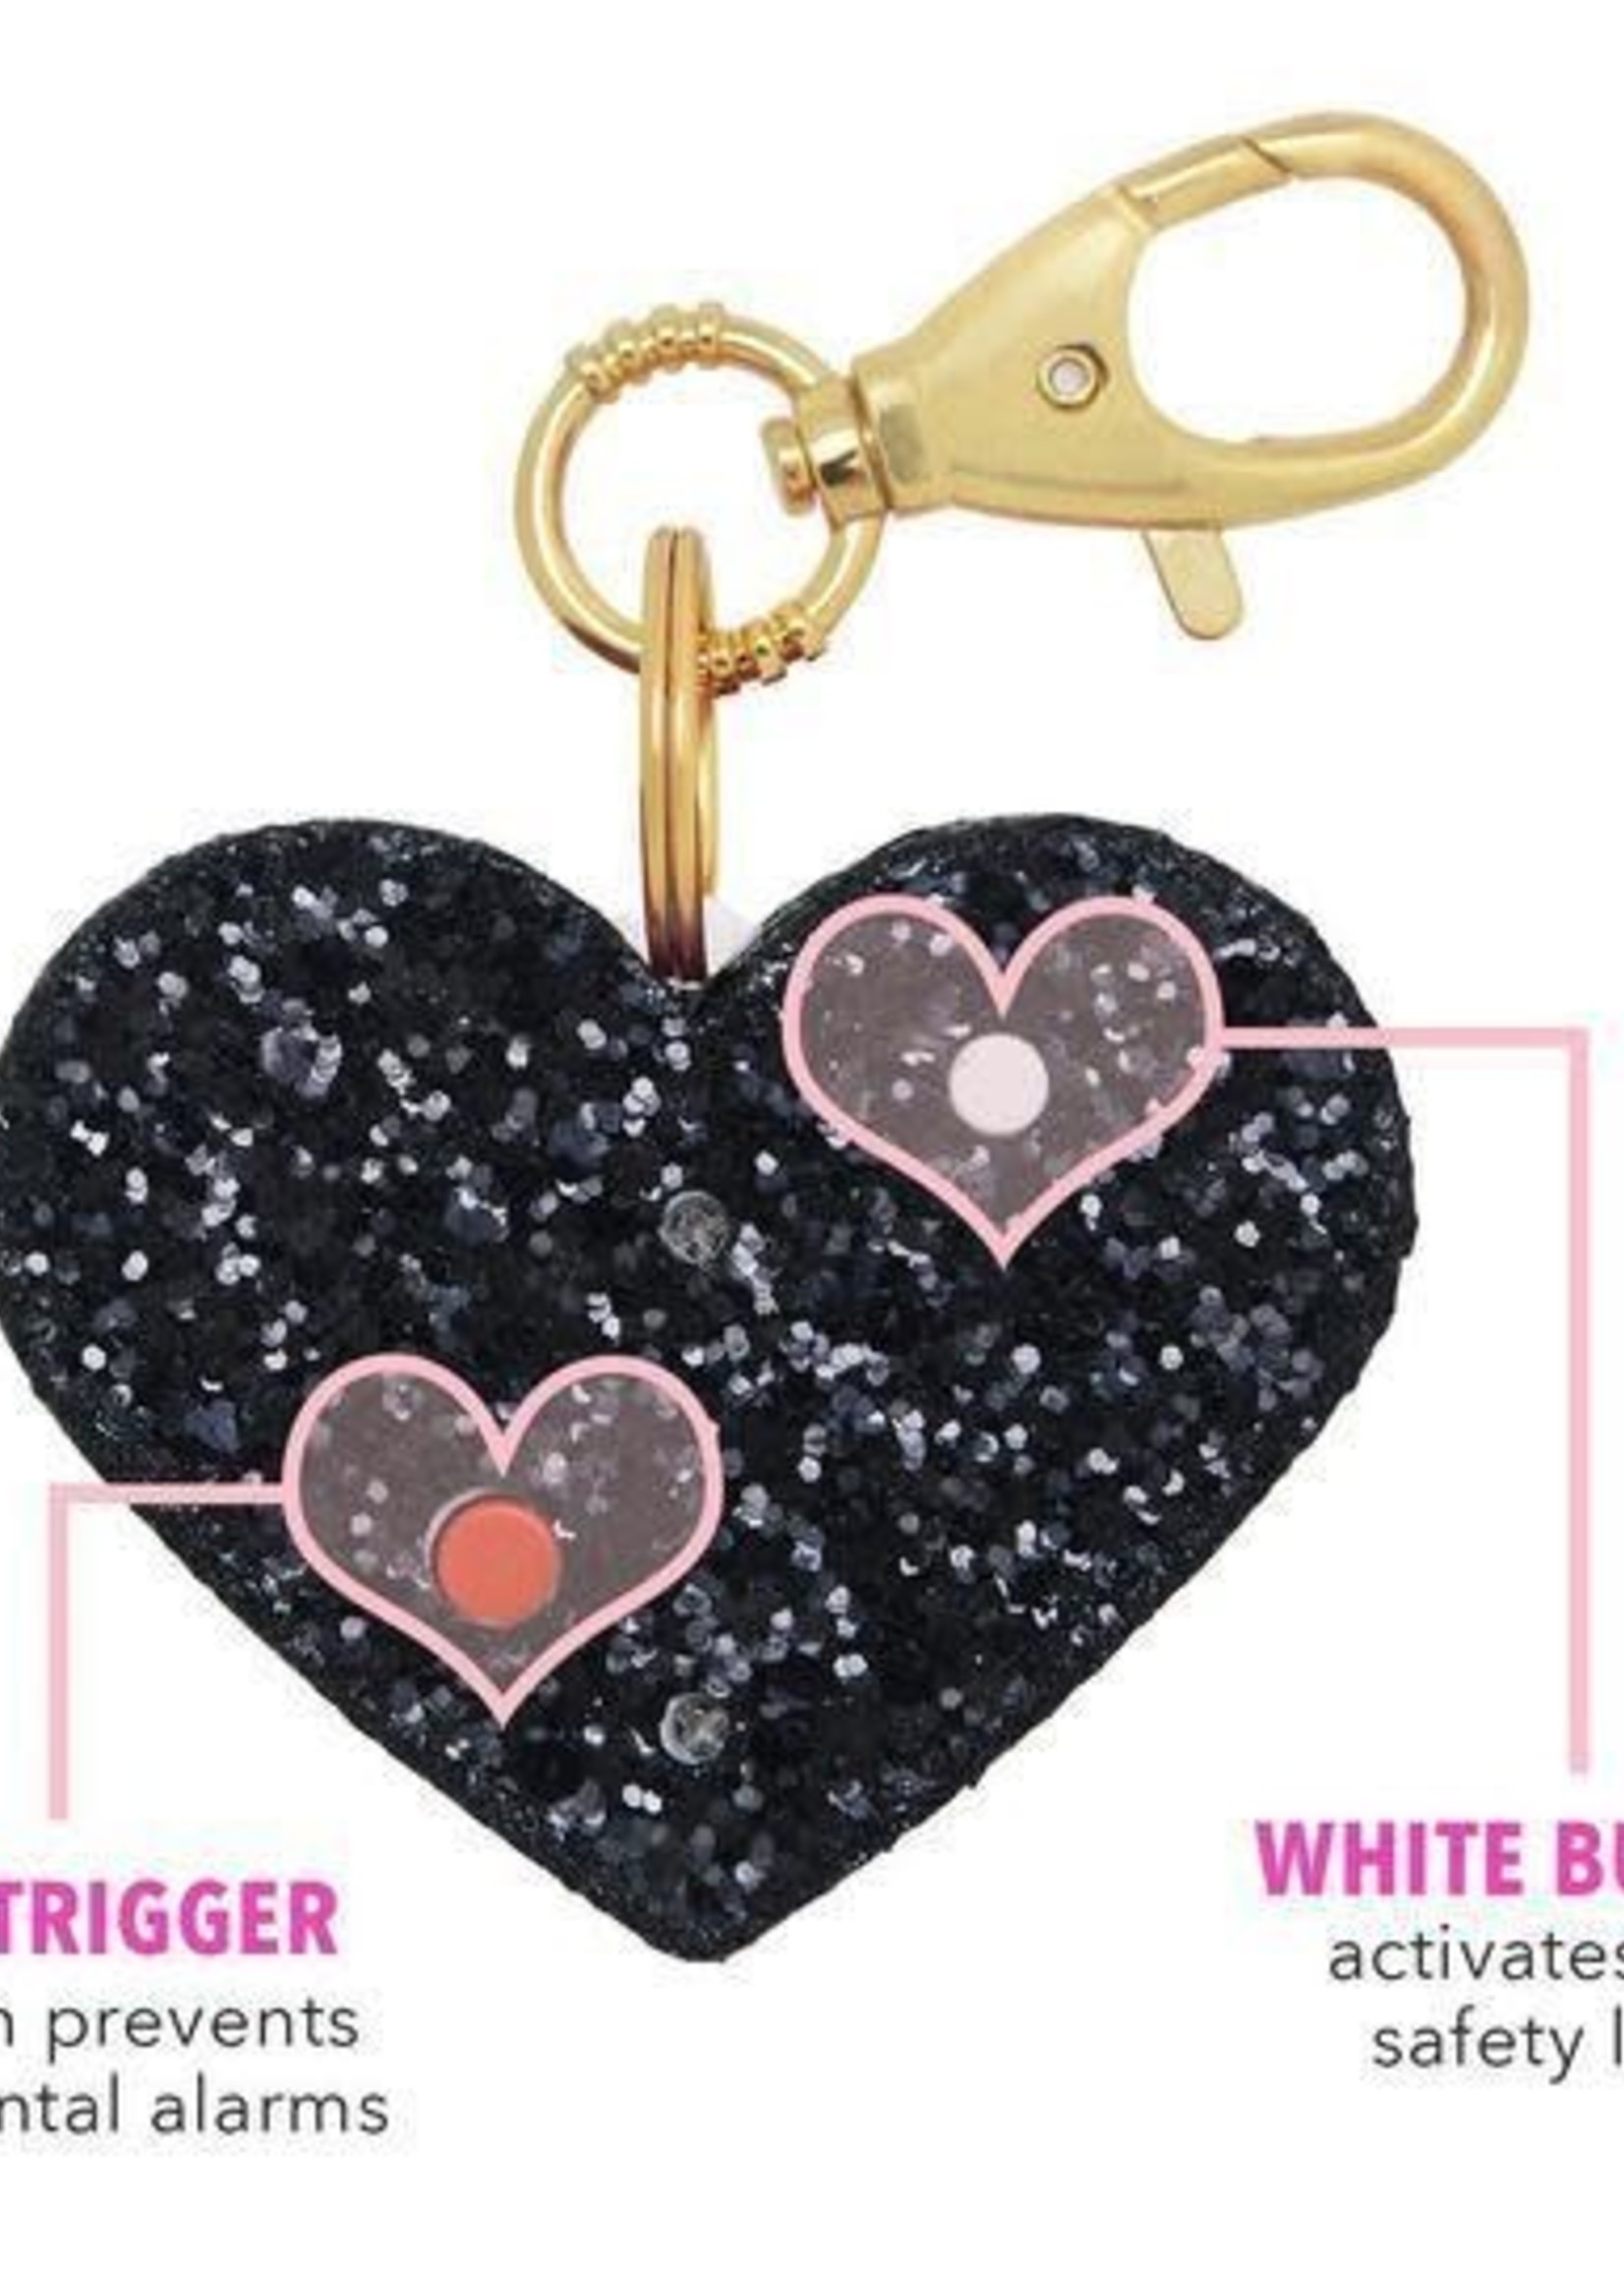 SUPER SPARKLY SAFETY STUFF PERSONAL AHH!-LARM - BLACK GLITTER HEART